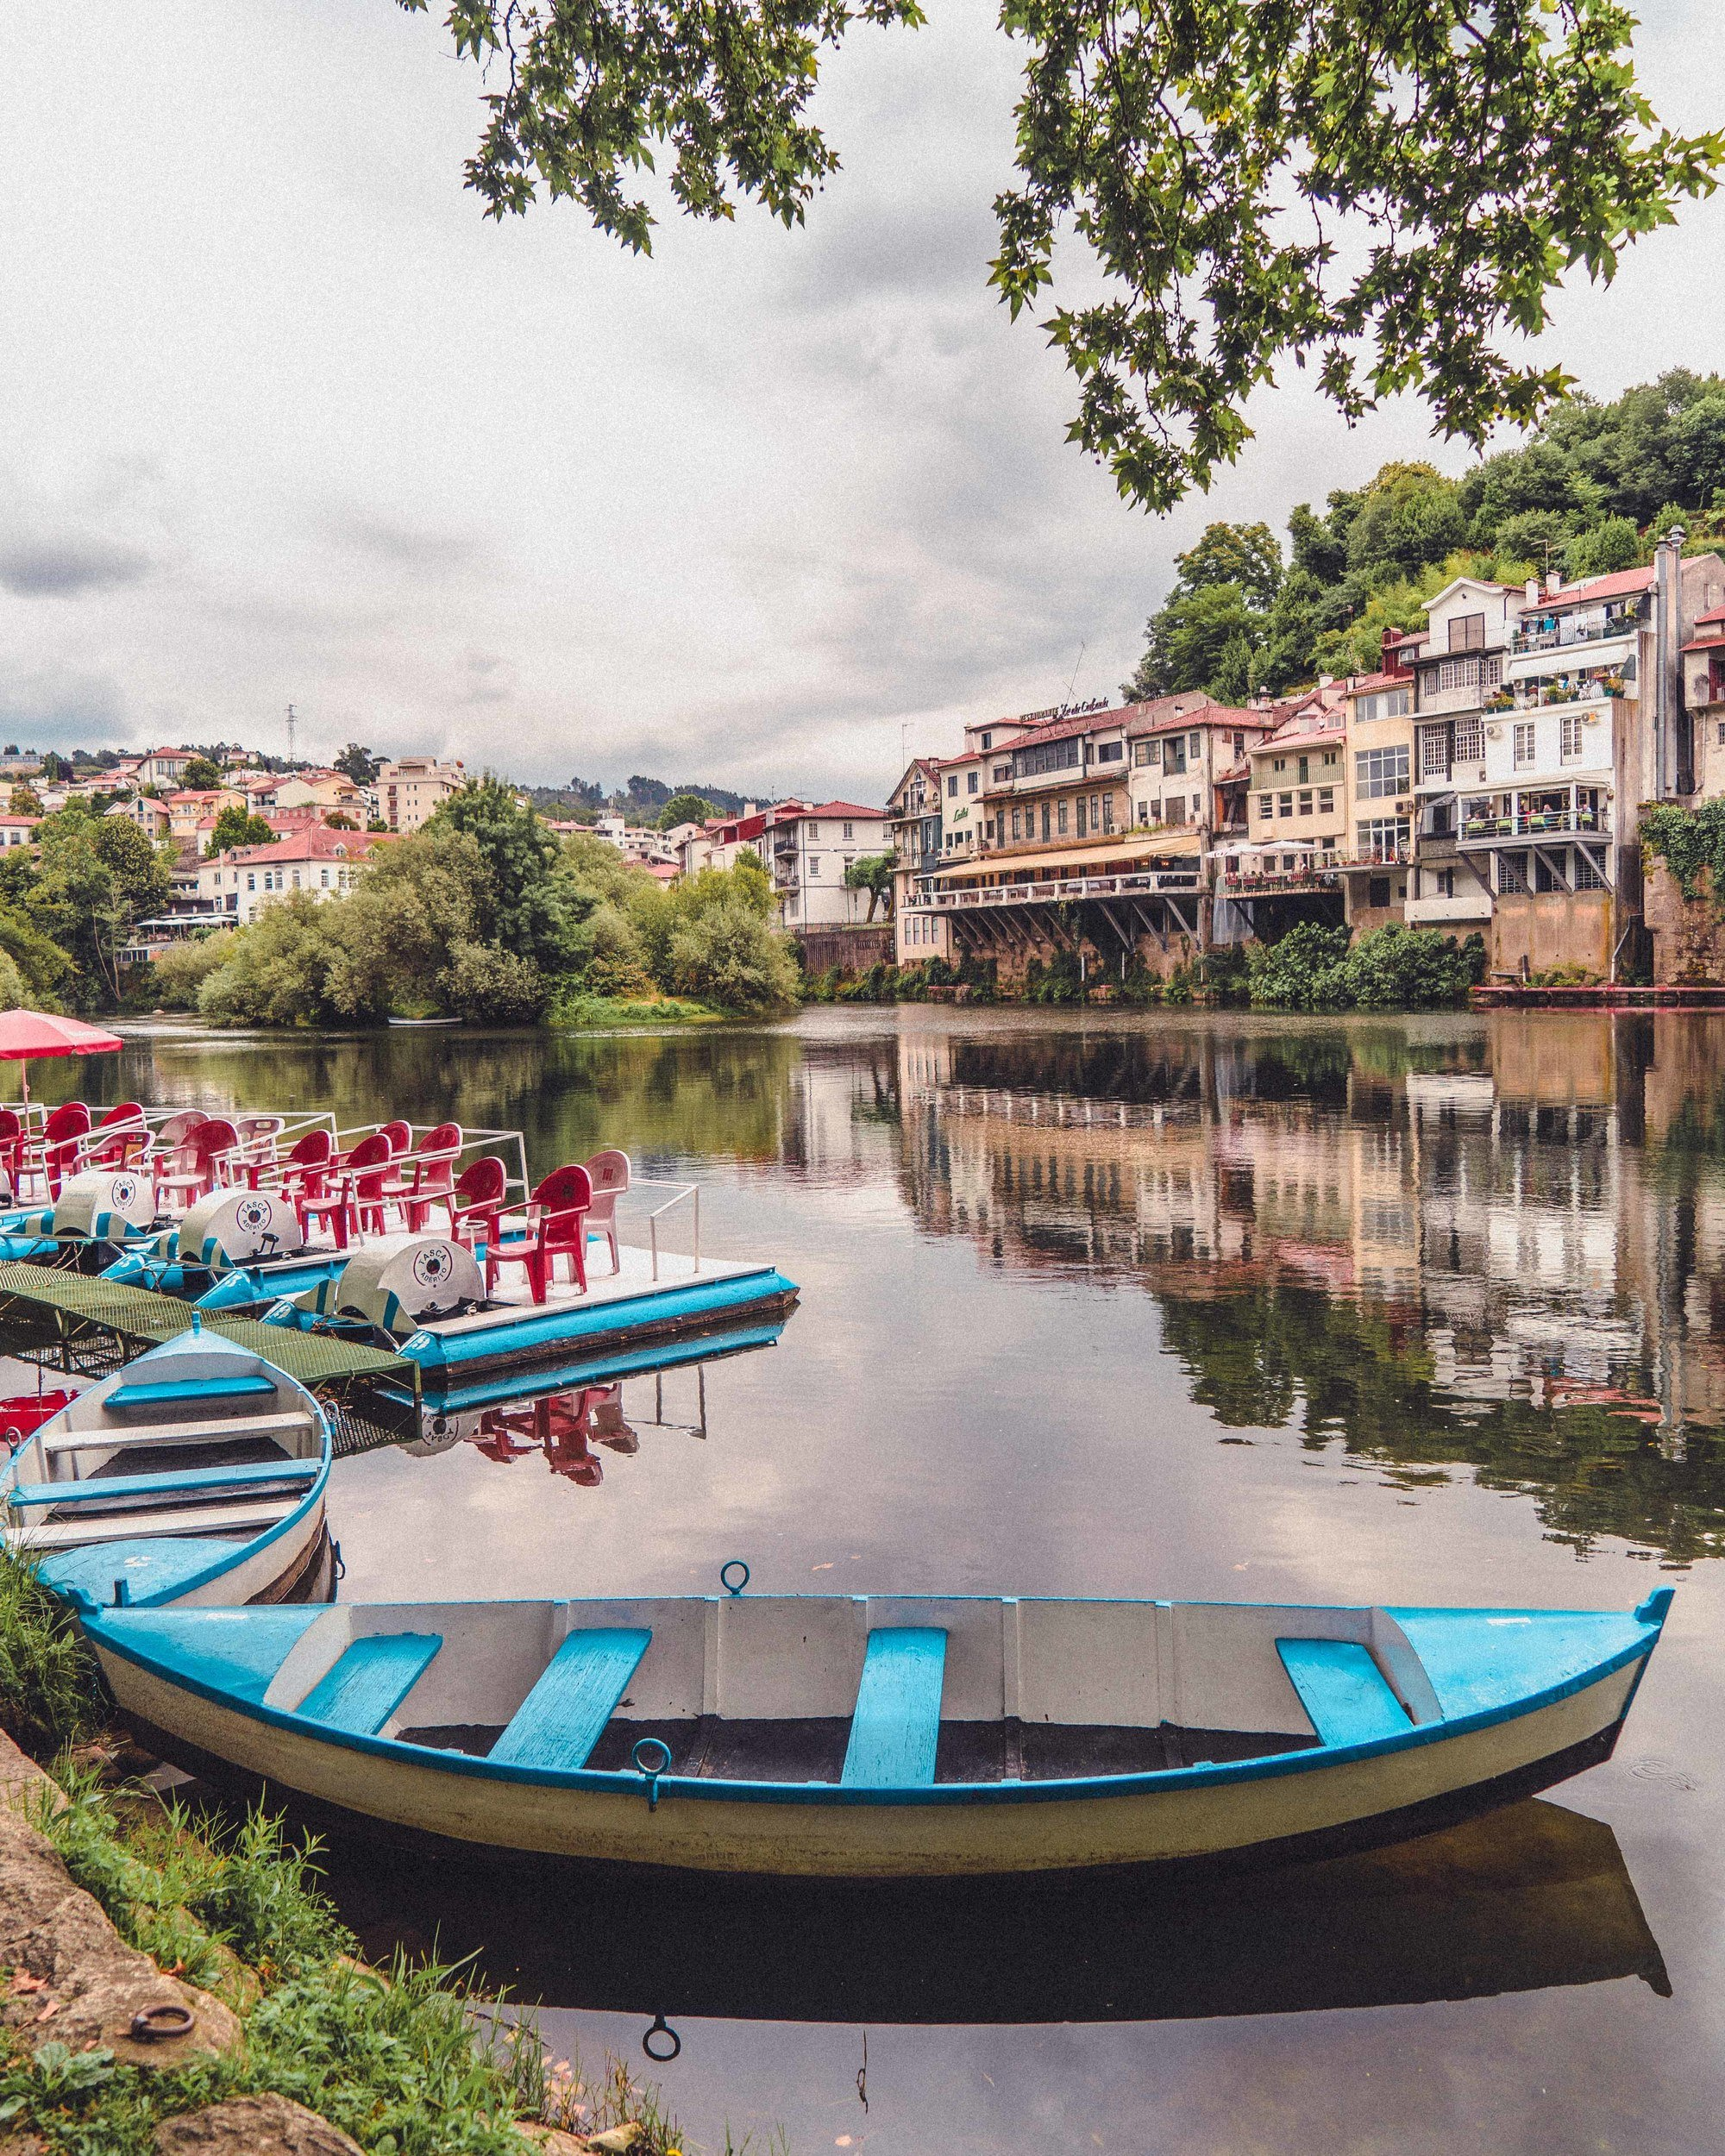 Places in Portugal want to miss off your Europe travel itinerary. Looking for the most beautiful locations and destinations in Northern Portugal? Here's your complete guide to the best eateries, vineyards, towns, cities, and historic places.